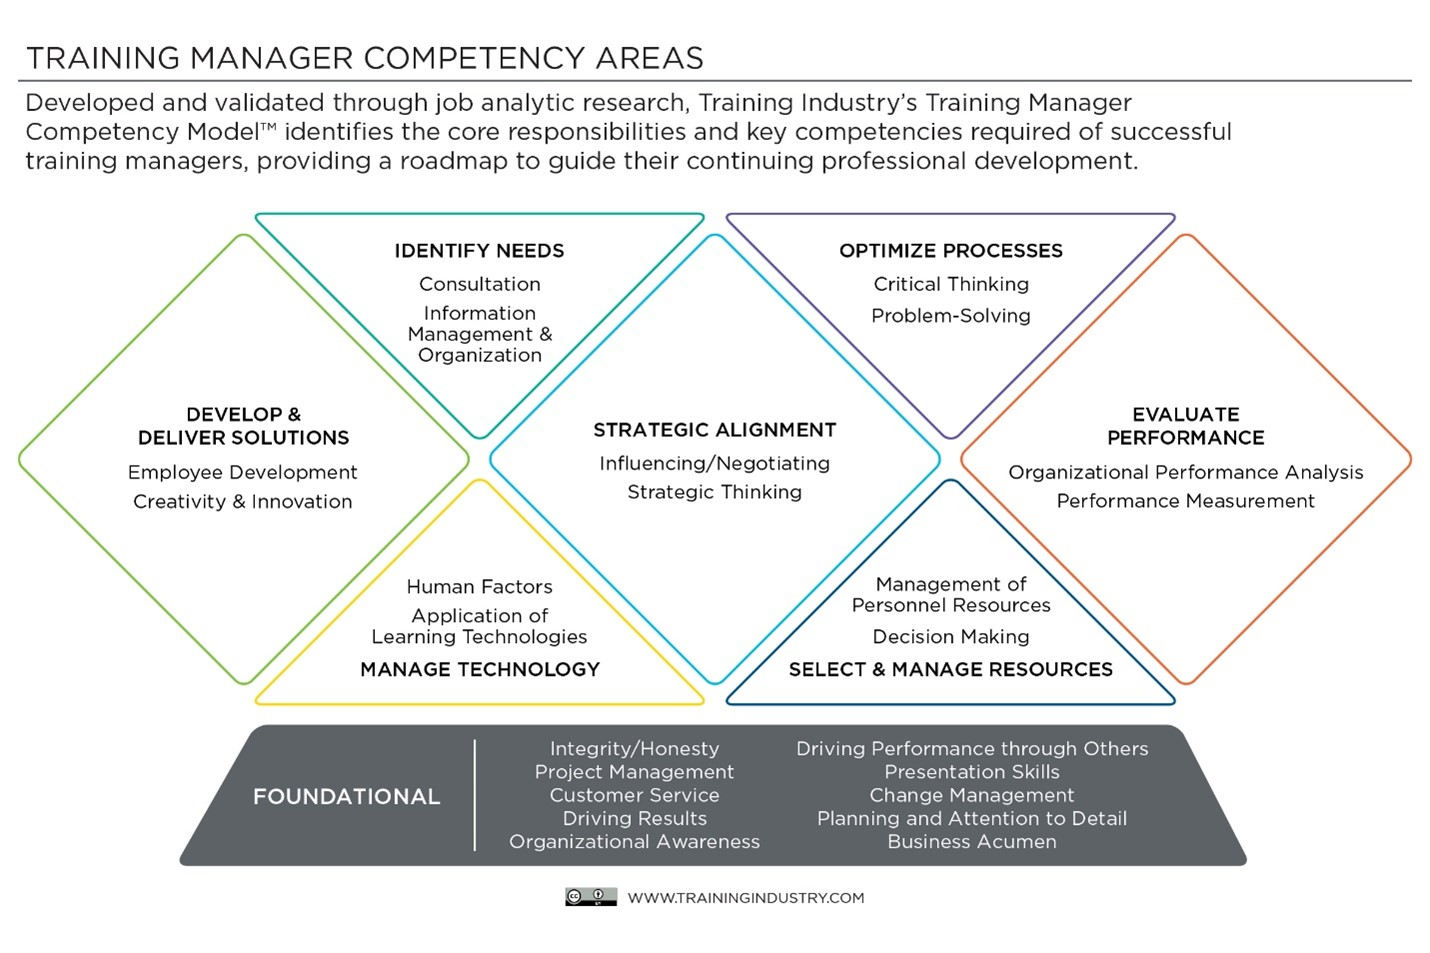 Training manager competency areas